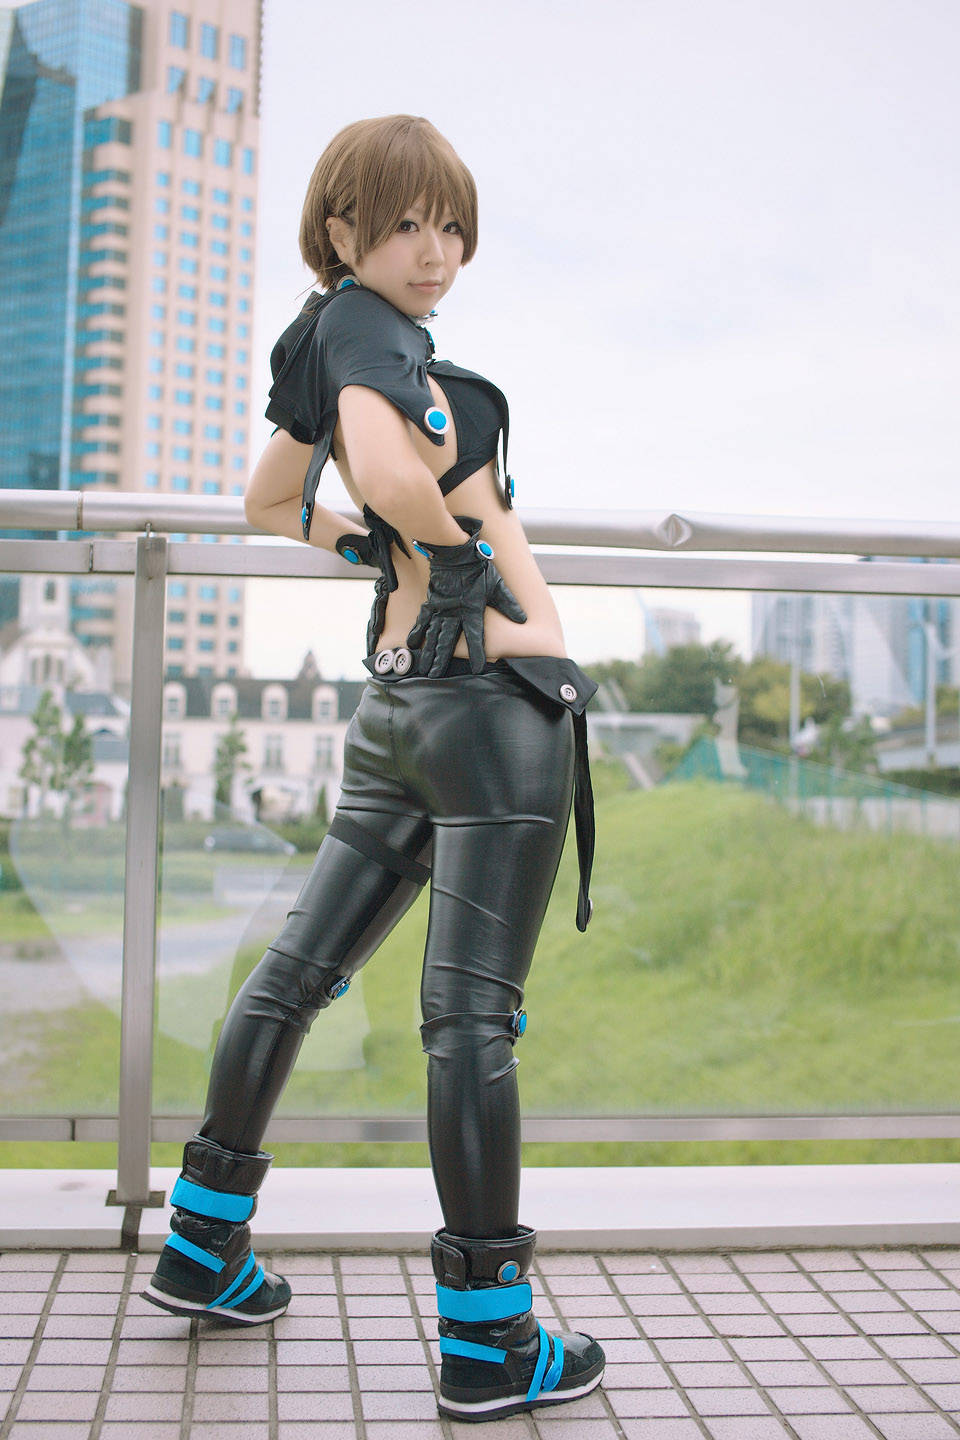 female cosplay costumes Hot